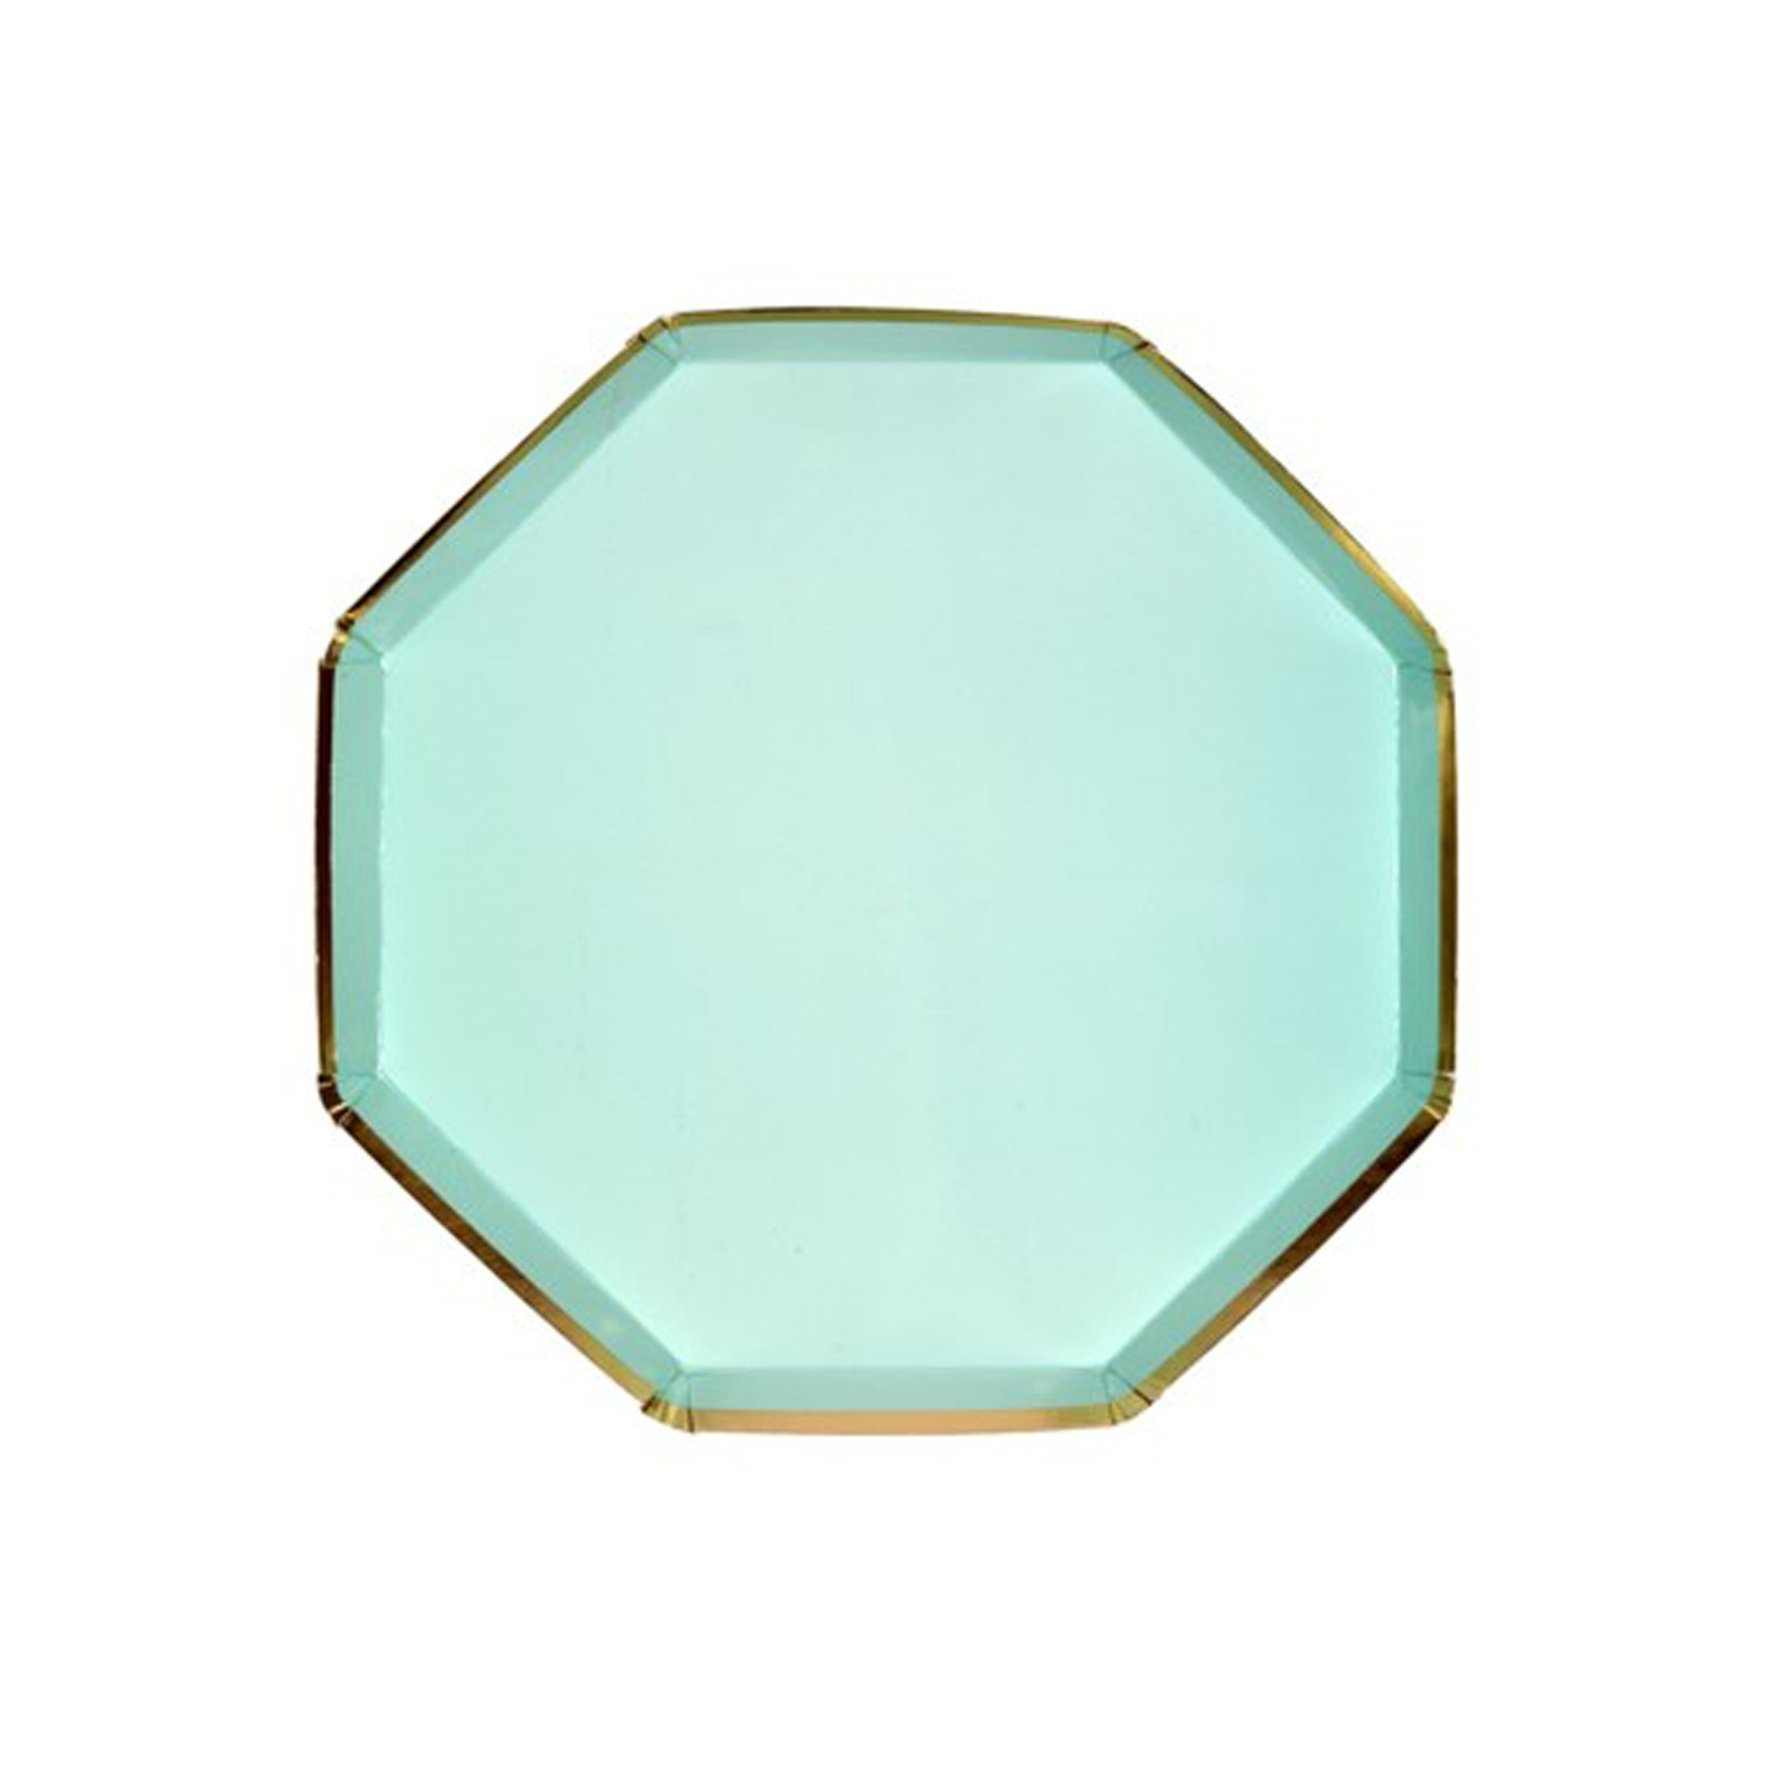 BUY ME / NEW ITEM $8.99 each Mint Green Octagonal Small Paper Plates - 8 Pack